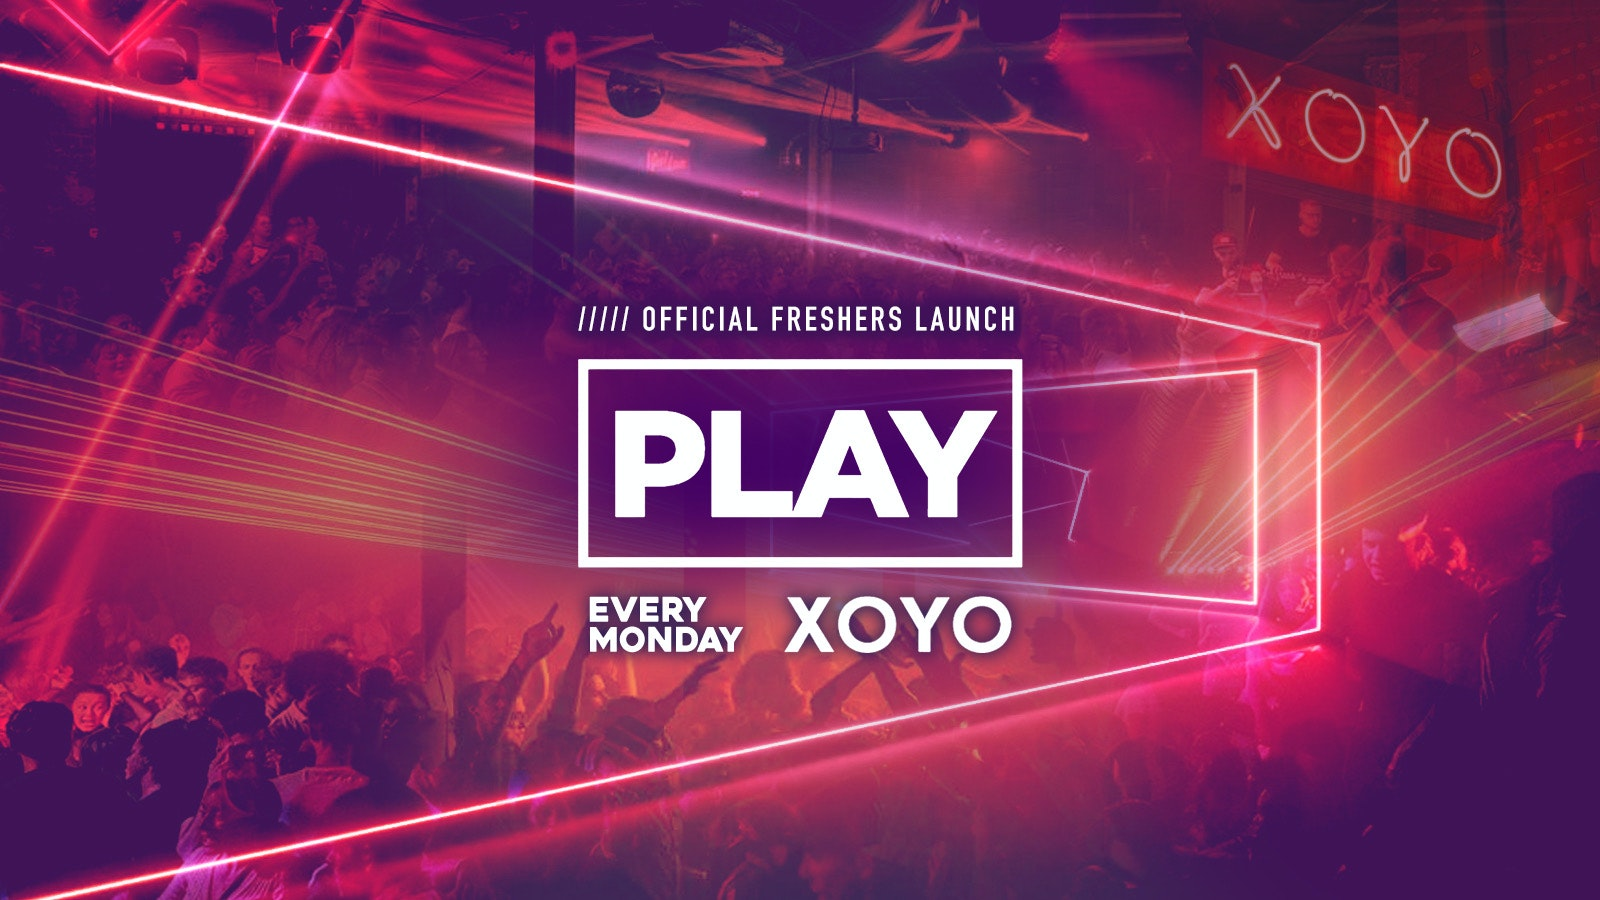 PLAY LONDON – FRESHERS LAUNCH PART 3 // XOYO – Every Monday